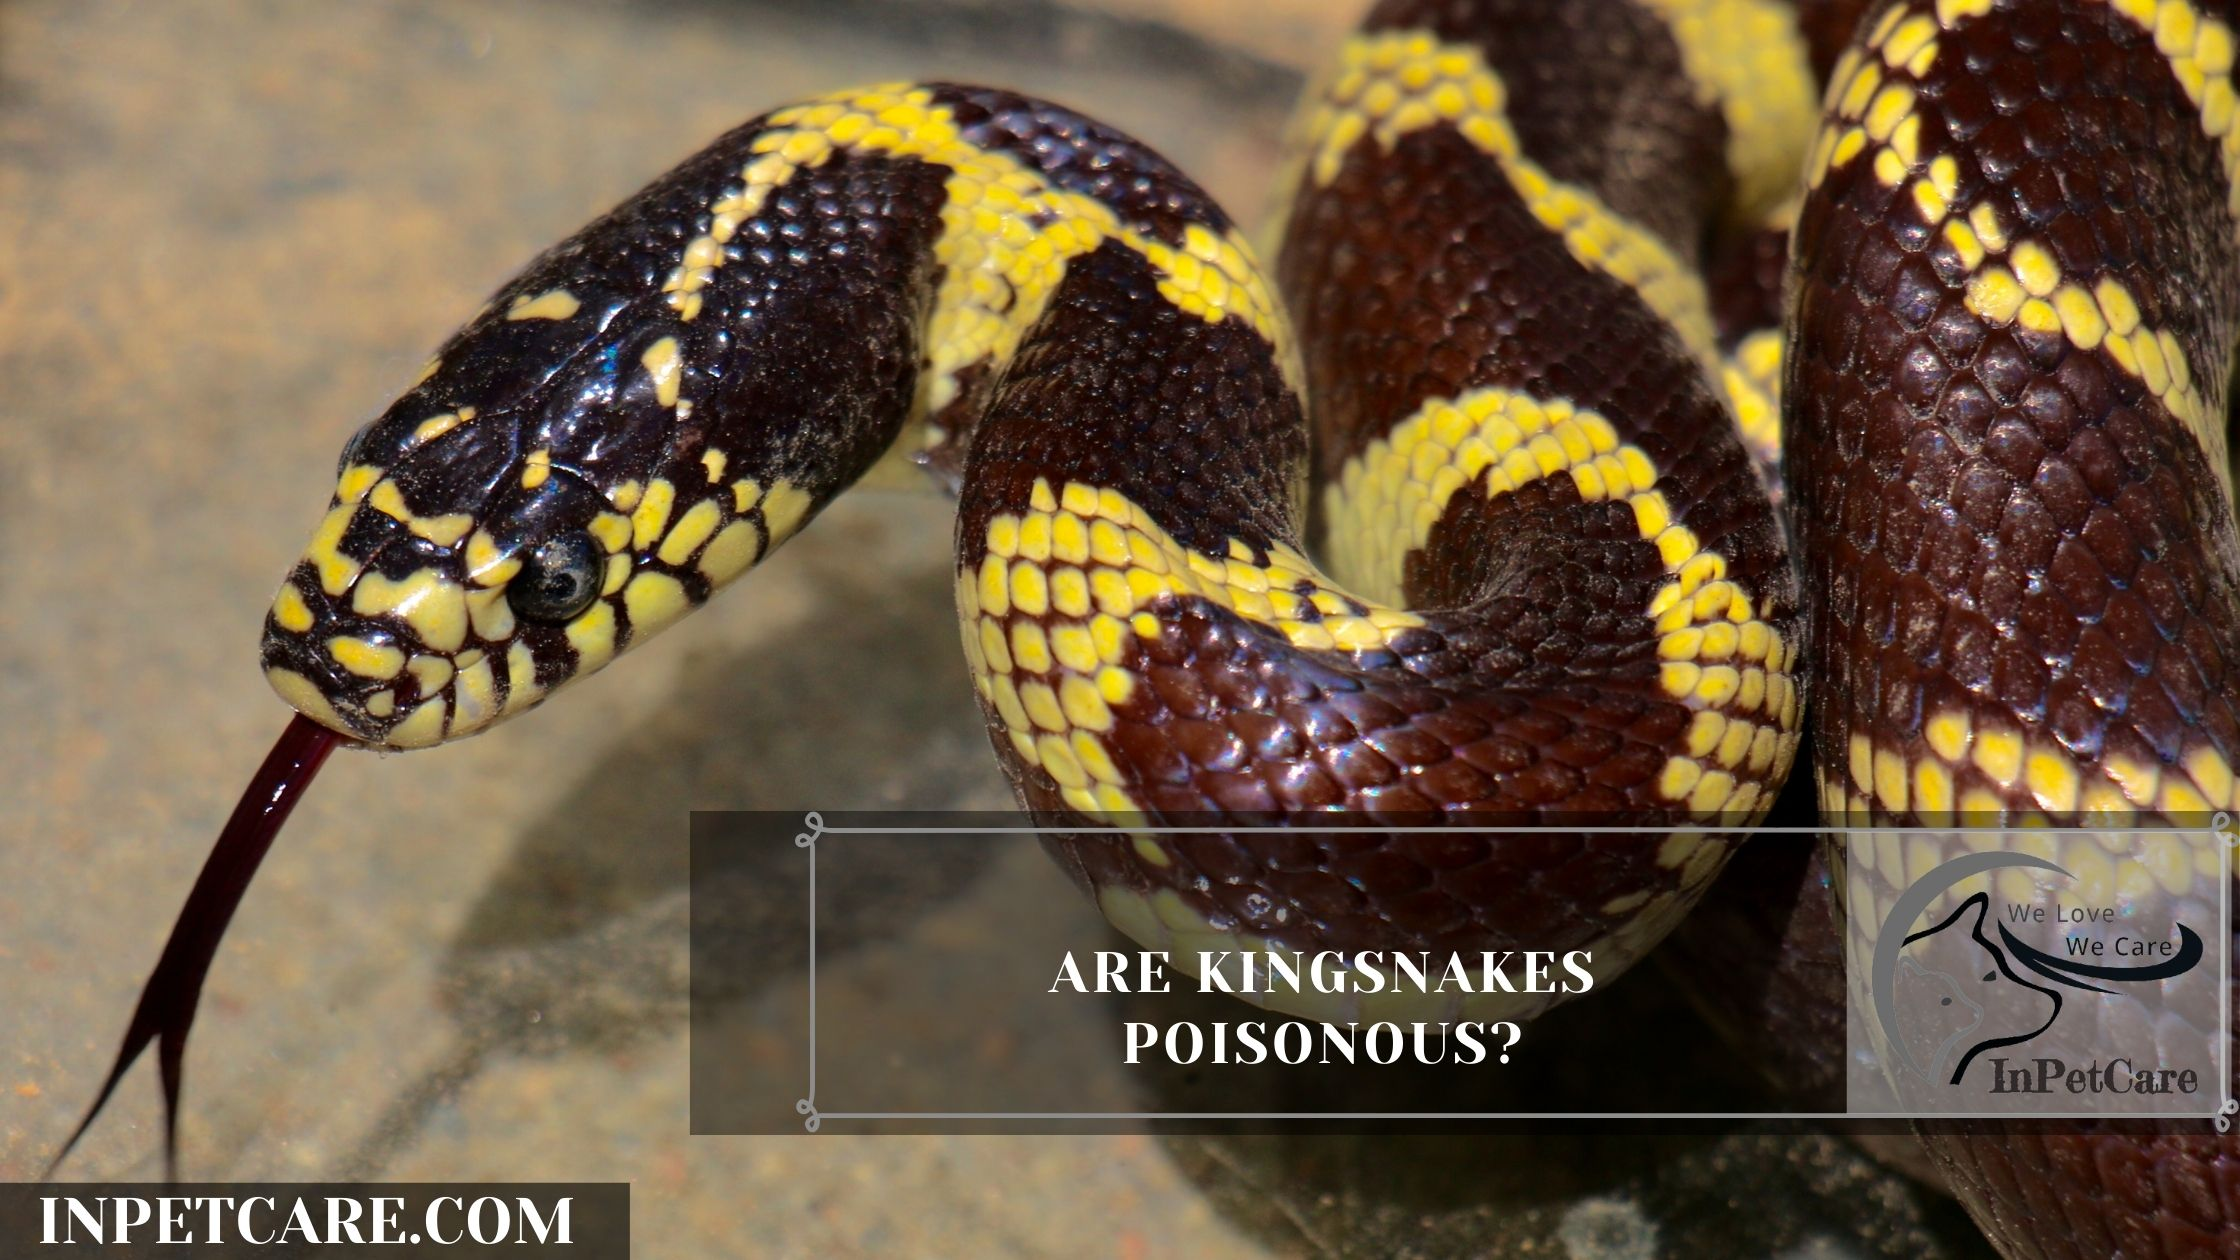 Are Kingsnakes Poisonous?